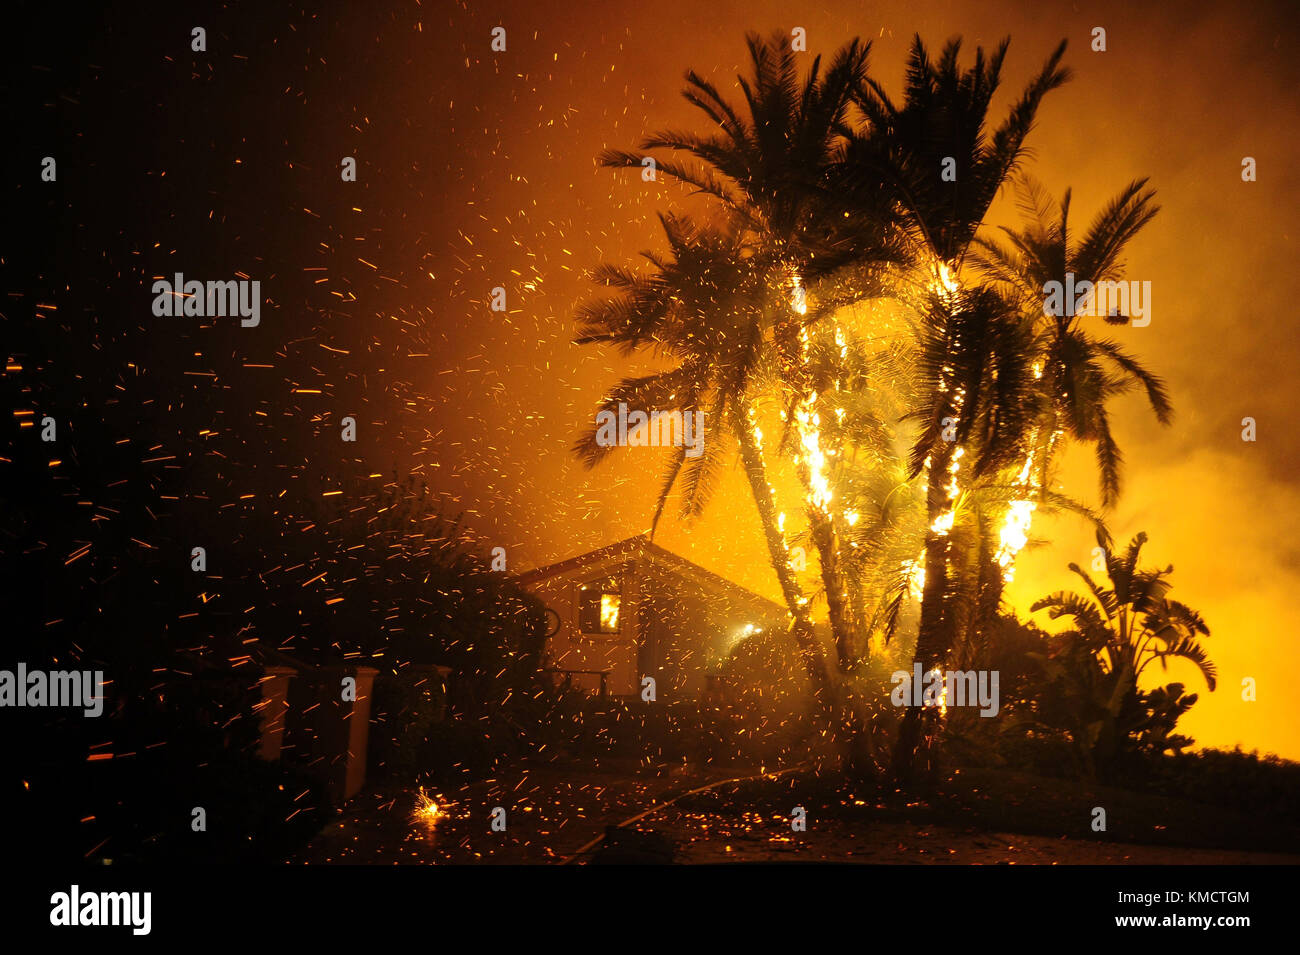 0306 Stock Photos Images Alamy Emas 05 Gran Santa Paula California Usa 5th Dec 2017 Fire Catches On A